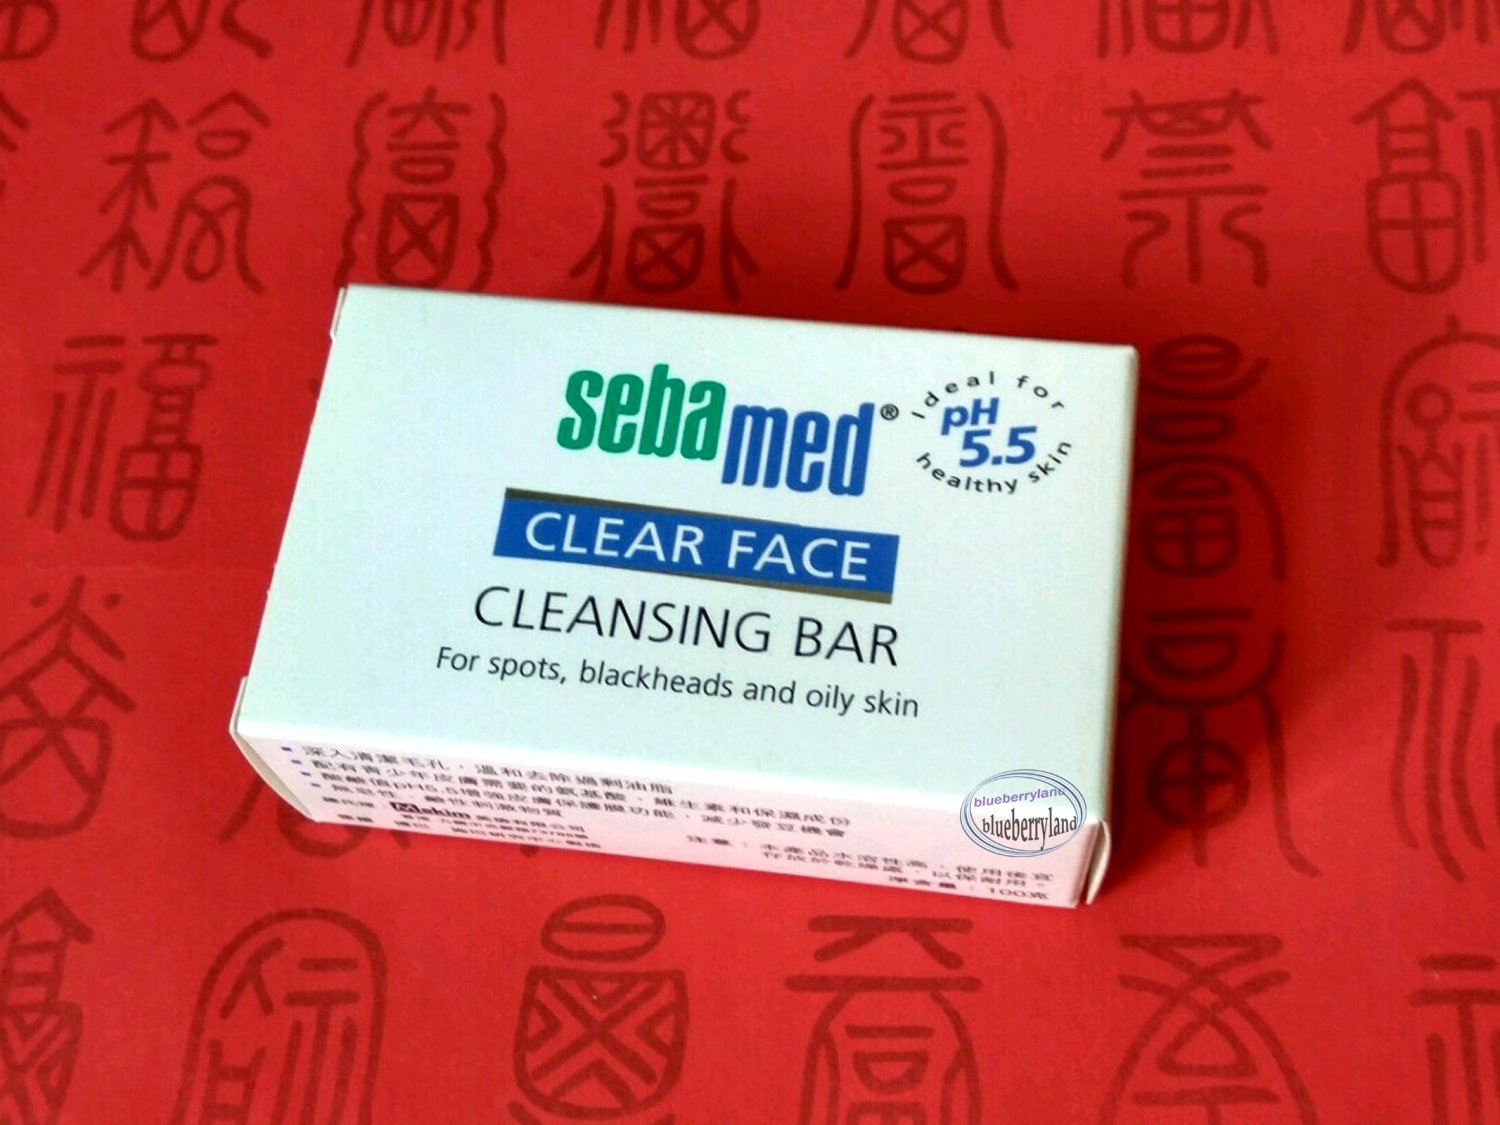 Sebamed Clear Face Cleansing Bar 100g / 3.5oz + Free Gift (Shower Cap)